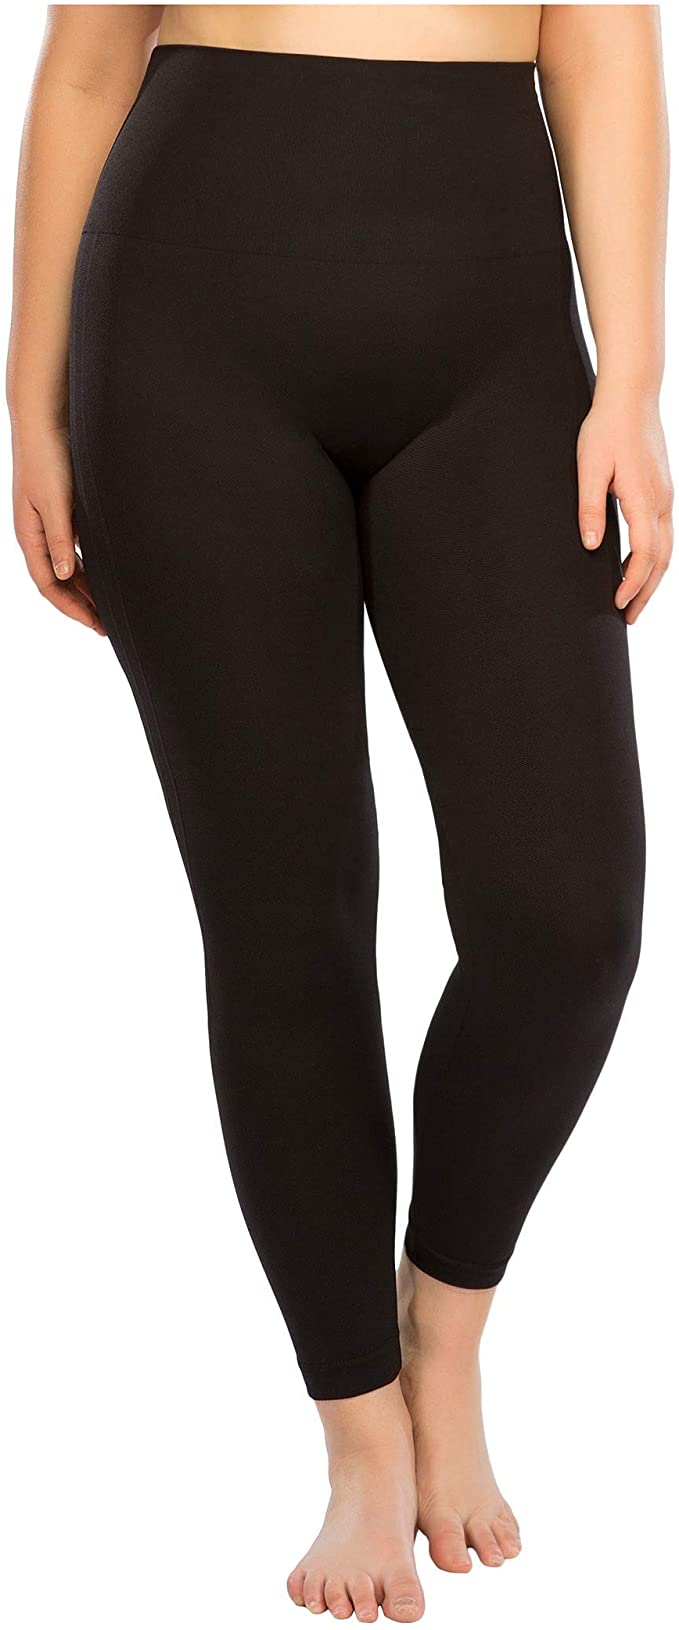 "<h3><a href=""https://amzn.to/35NrcMb"" rel=""nofollow noopener"" target=""_blank"" data-ylk=""slk:Look At Me Now Seamless Leggings"" class=""link rapid-noclick-resp"">Look At Me Now Seamless Leggings</a> </h3><br><br>4 out of 5 stars and 762 reviews<br><br><strong>Promising Review: </strong>One happy multi-use leggings purchaser says ""These leggings are wonderful. They fit beautifully, are very comfortable and are flattering. They are not too tight and have a great texture. I am a size 6/8 and bought a medium. I brought them on a week long trip and was able to dress them up or down for any occasion. They pack like a charm and will not wrinkle. Worth every penny.""<br><br><strong>SPANX</strong> Look at Me Now Seamless Leggings, $, available at <a href=""https://amzn.to/35NrcMb"" rel=""nofollow noopener"" target=""_blank"" data-ylk=""slk:Amazon"" class=""link rapid-noclick-resp"">Amazon</a>"